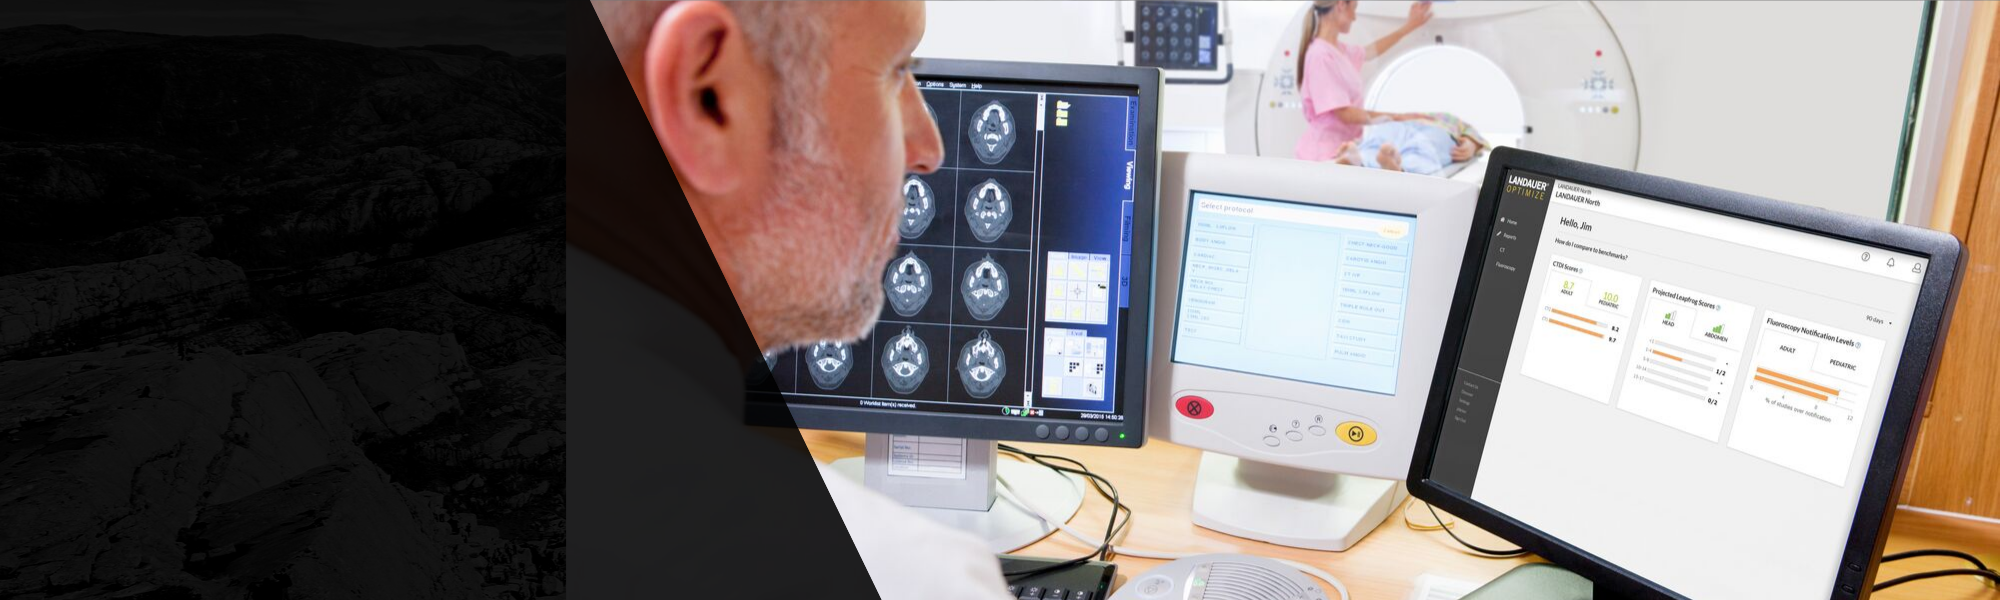 How Medical Imaging Departments Can Adhere to Current Radiation Safety Rules